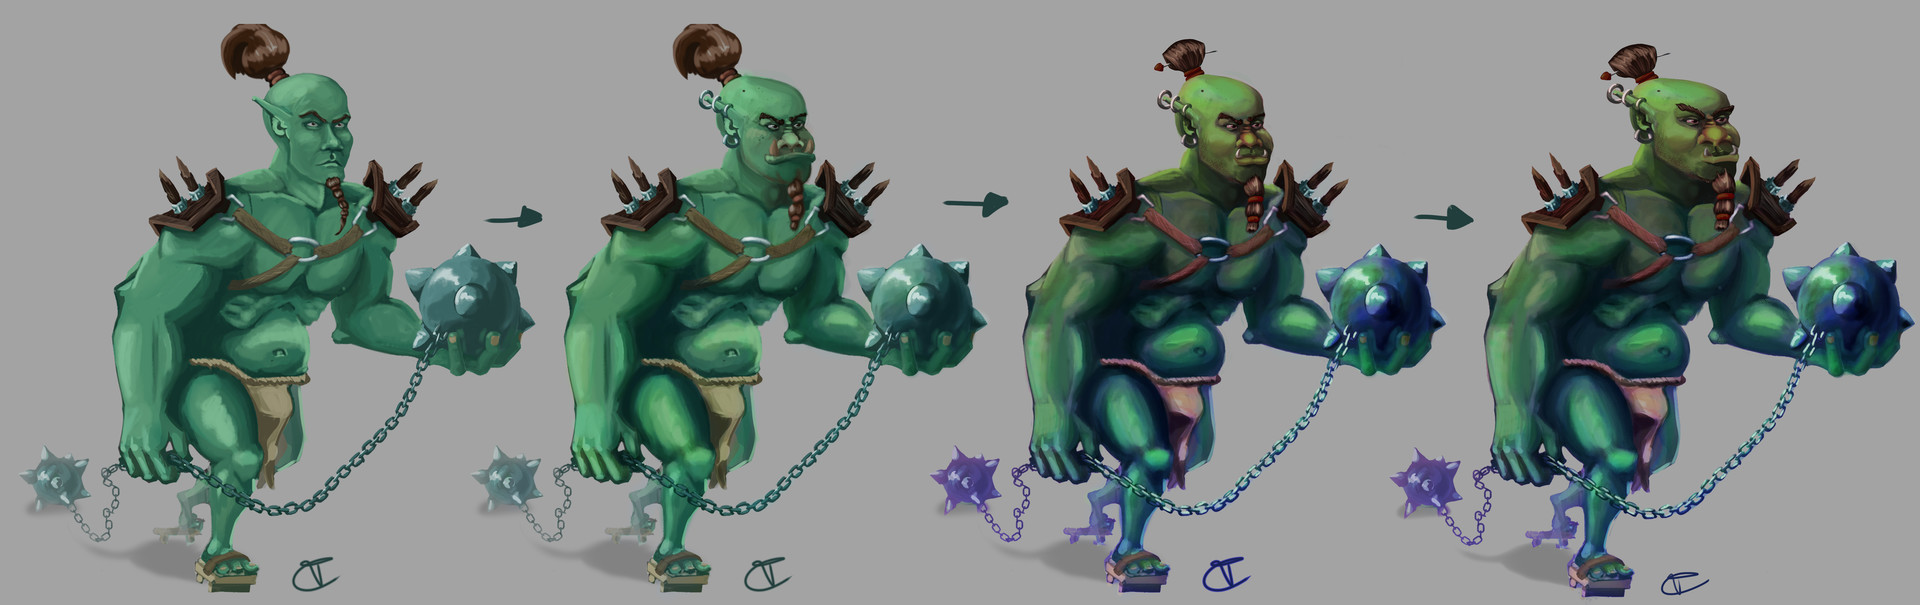 Travis clarke ogre progression